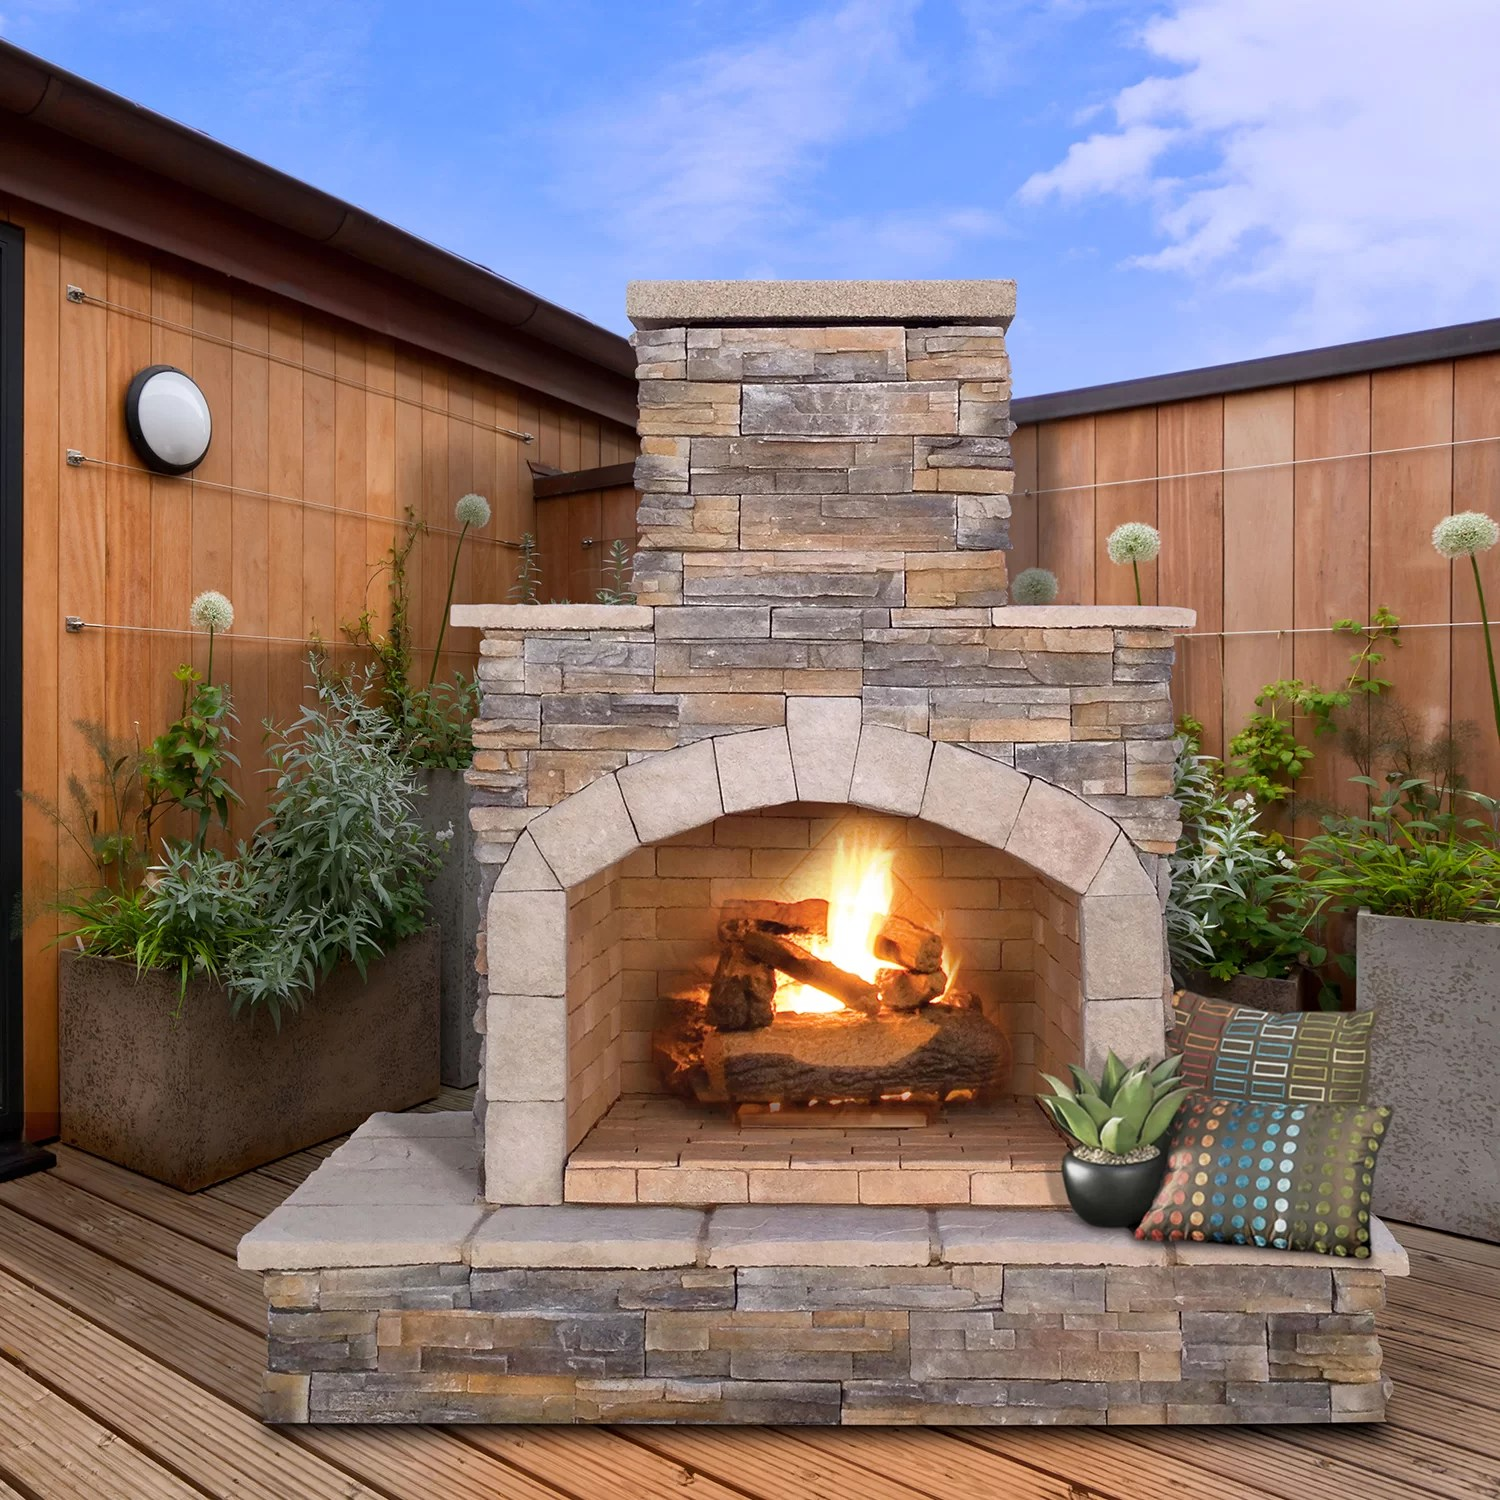 CalFlame Natural Stone Propane / Gas Outdoor Fireplace ... on Outdoor Gas Fireplace For Deck id=35305